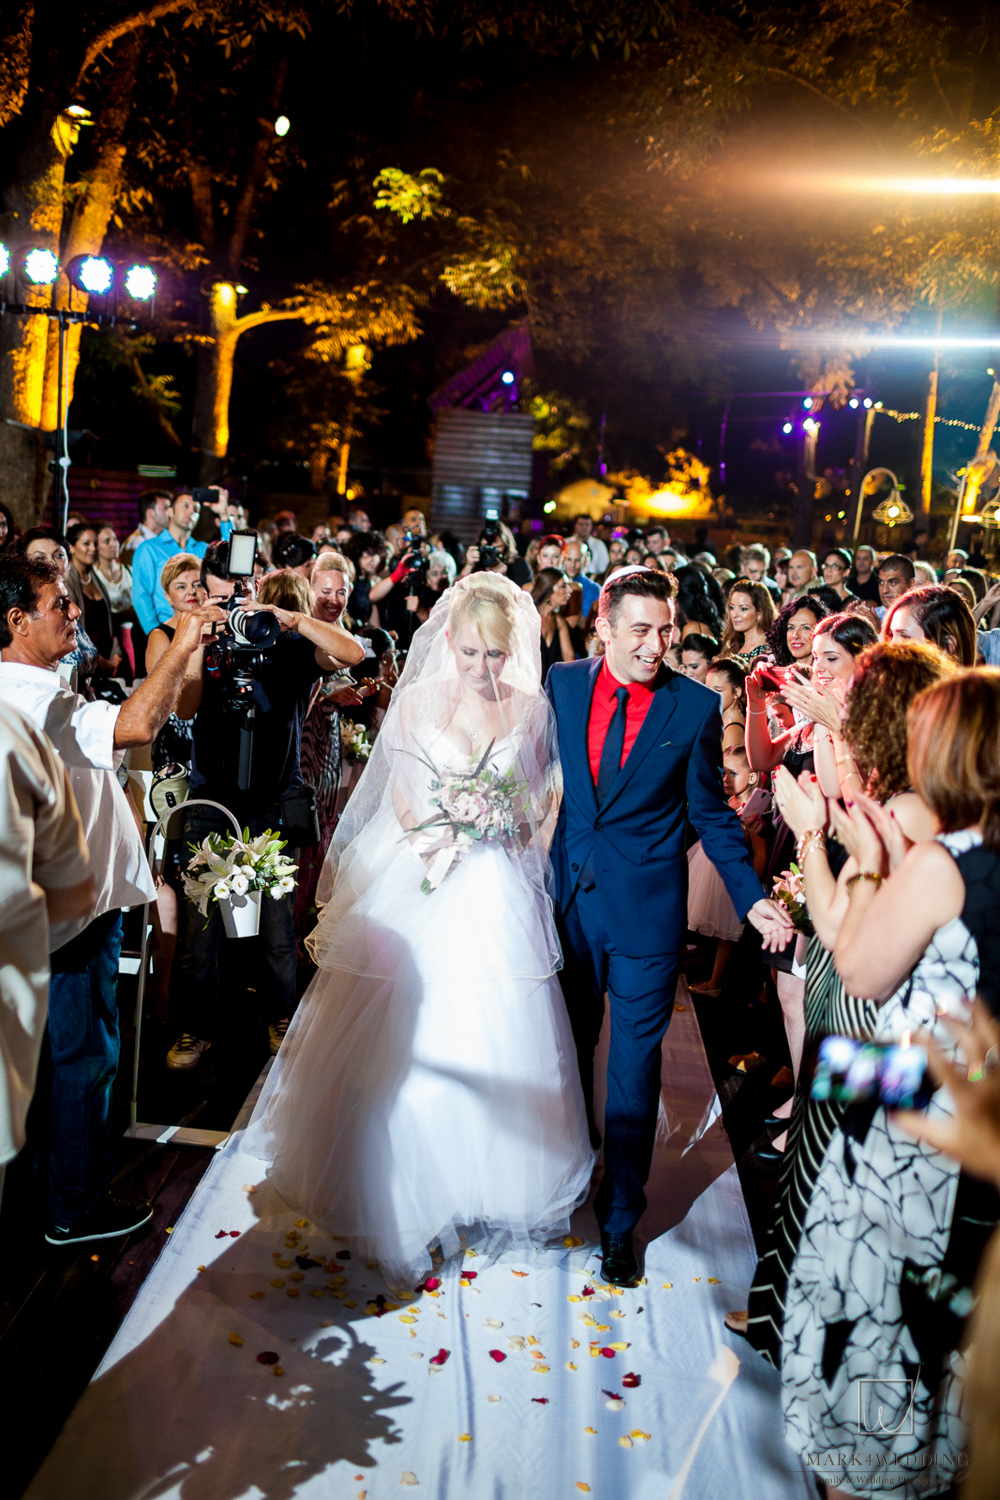 Karlos & Marina wedding_279.jpg